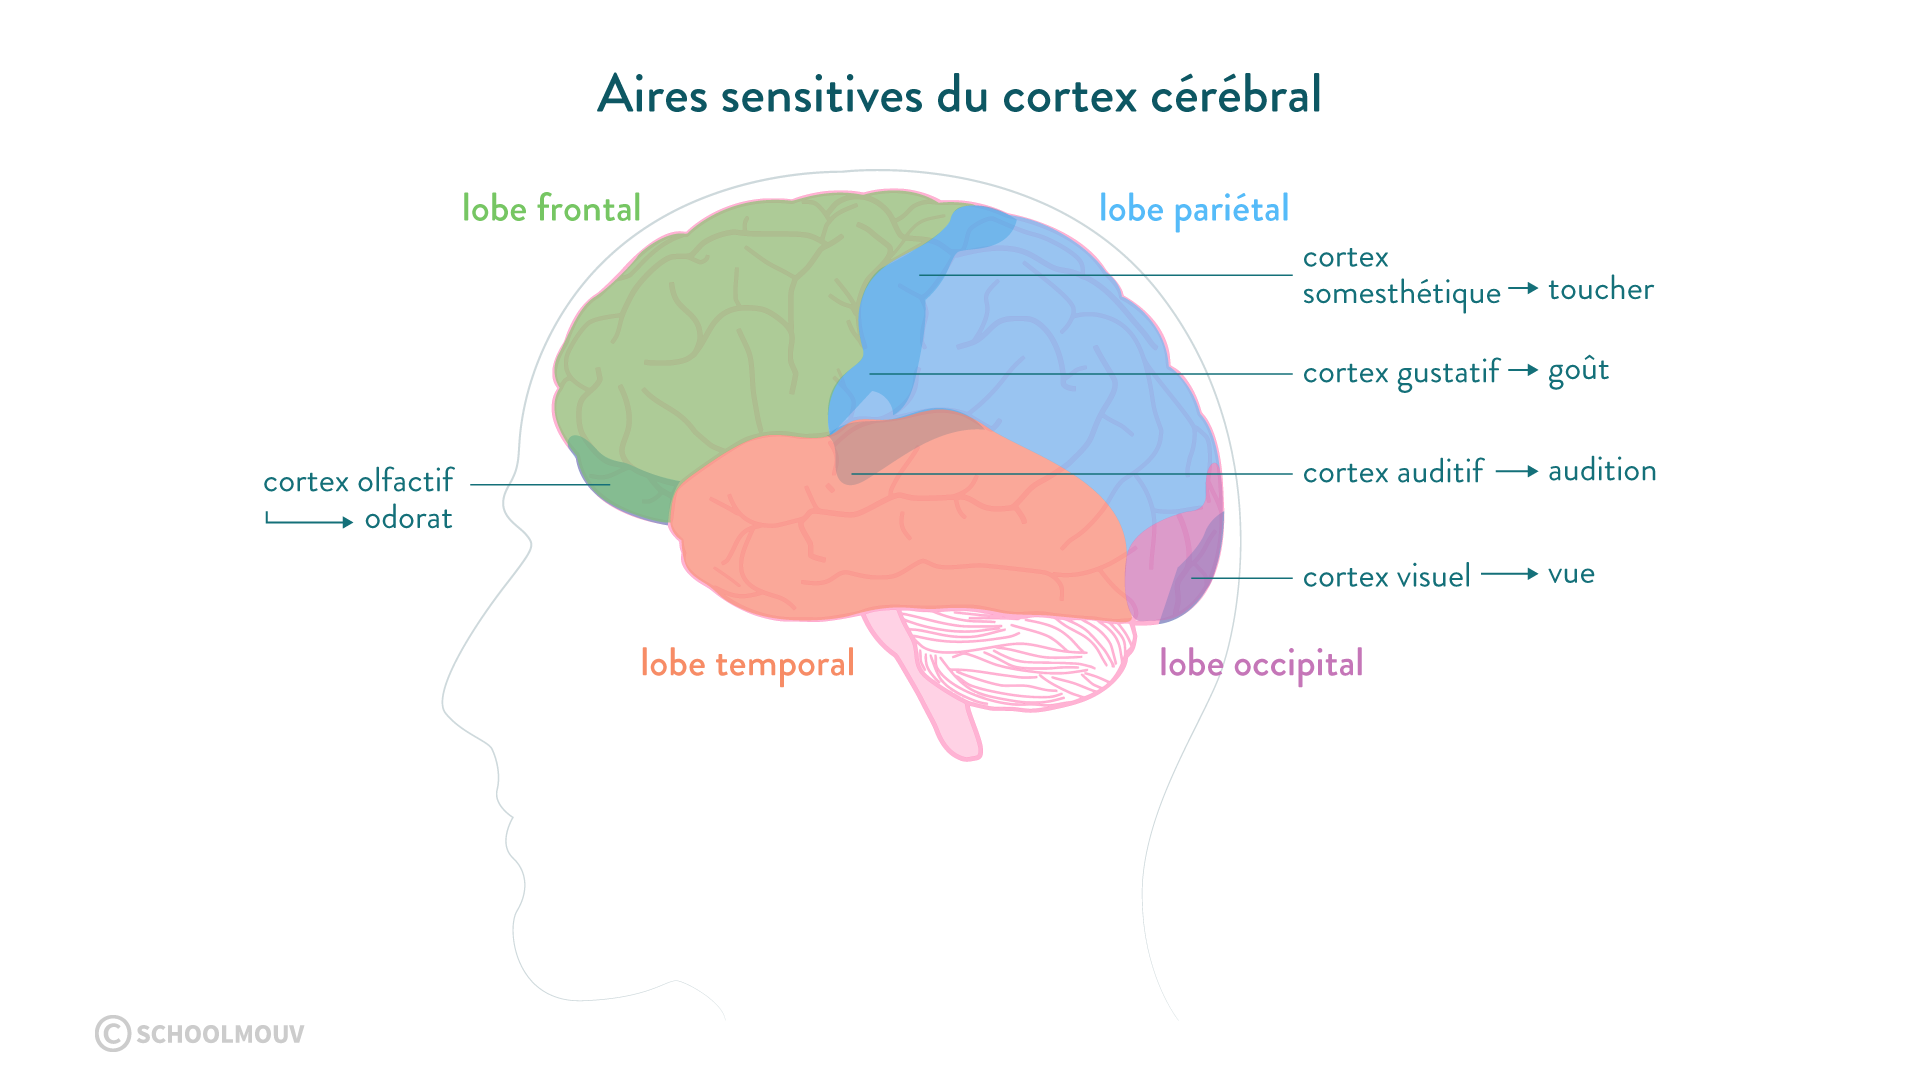 cortex cérébral audition aires sensitives lobe